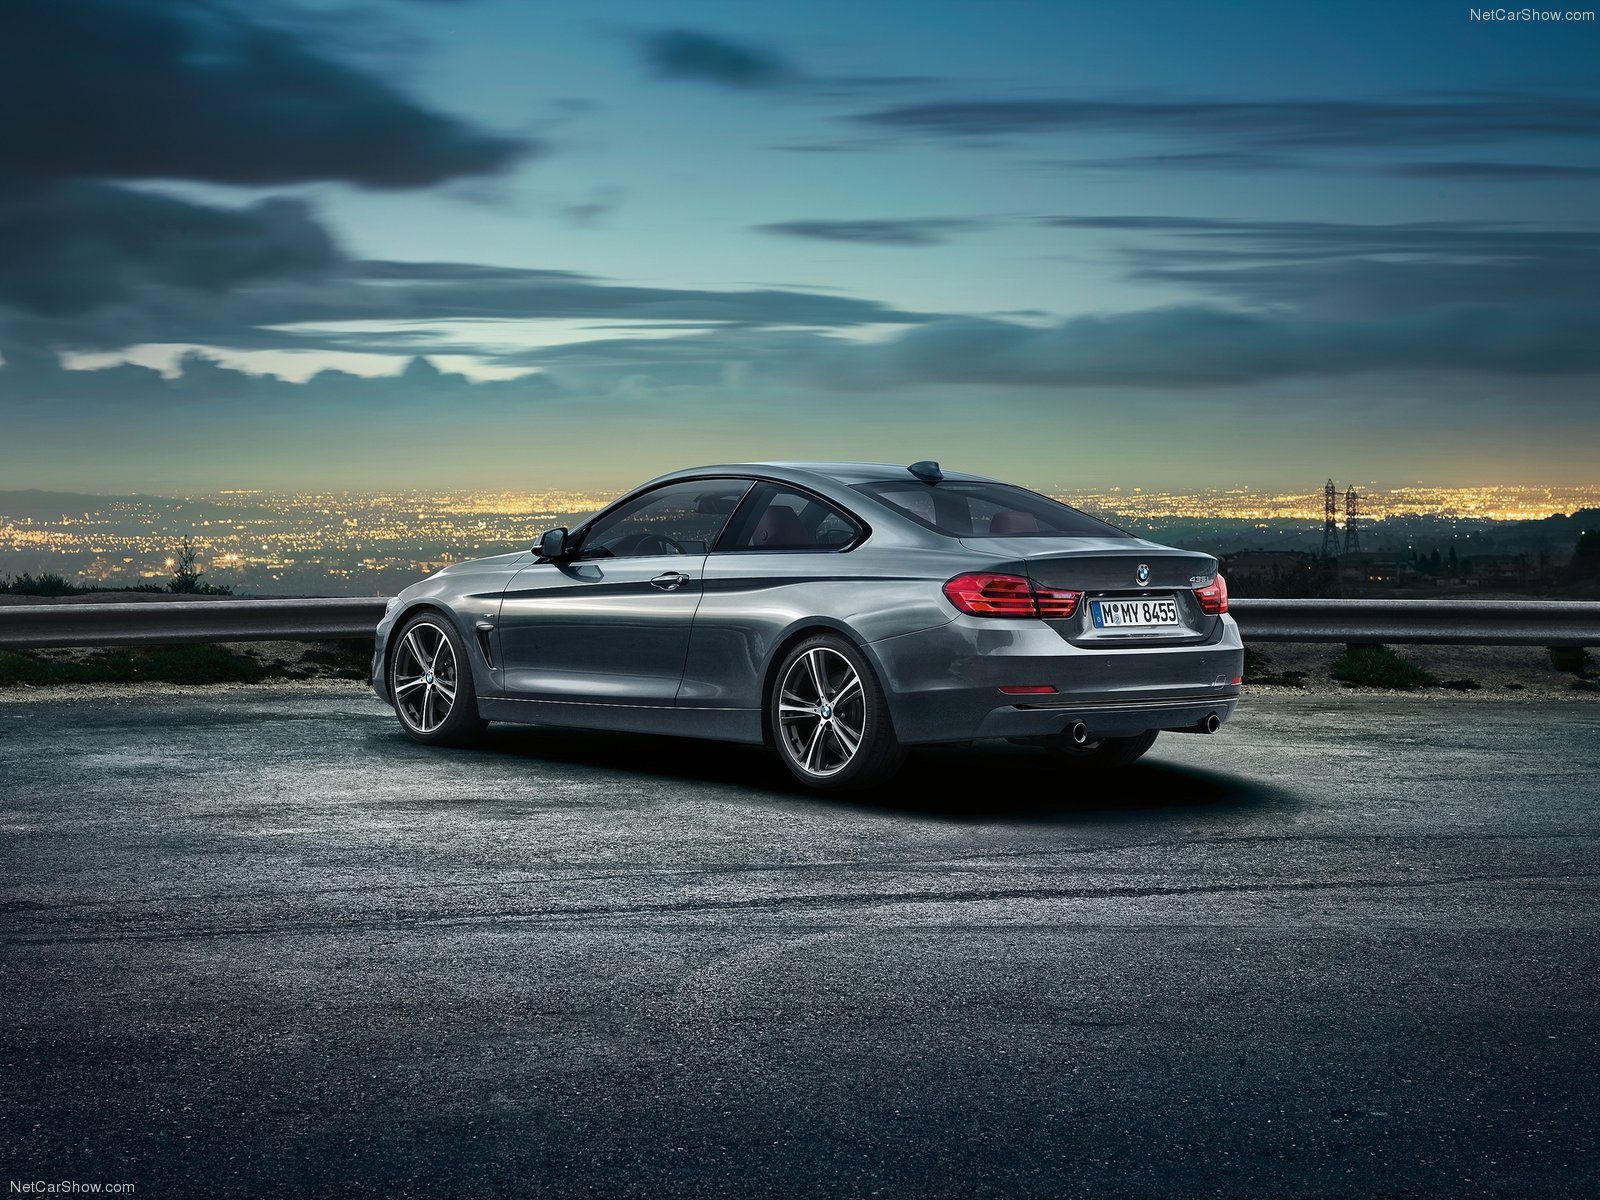 BMW-4-Series_Coupe-2014-1600-23.jpg